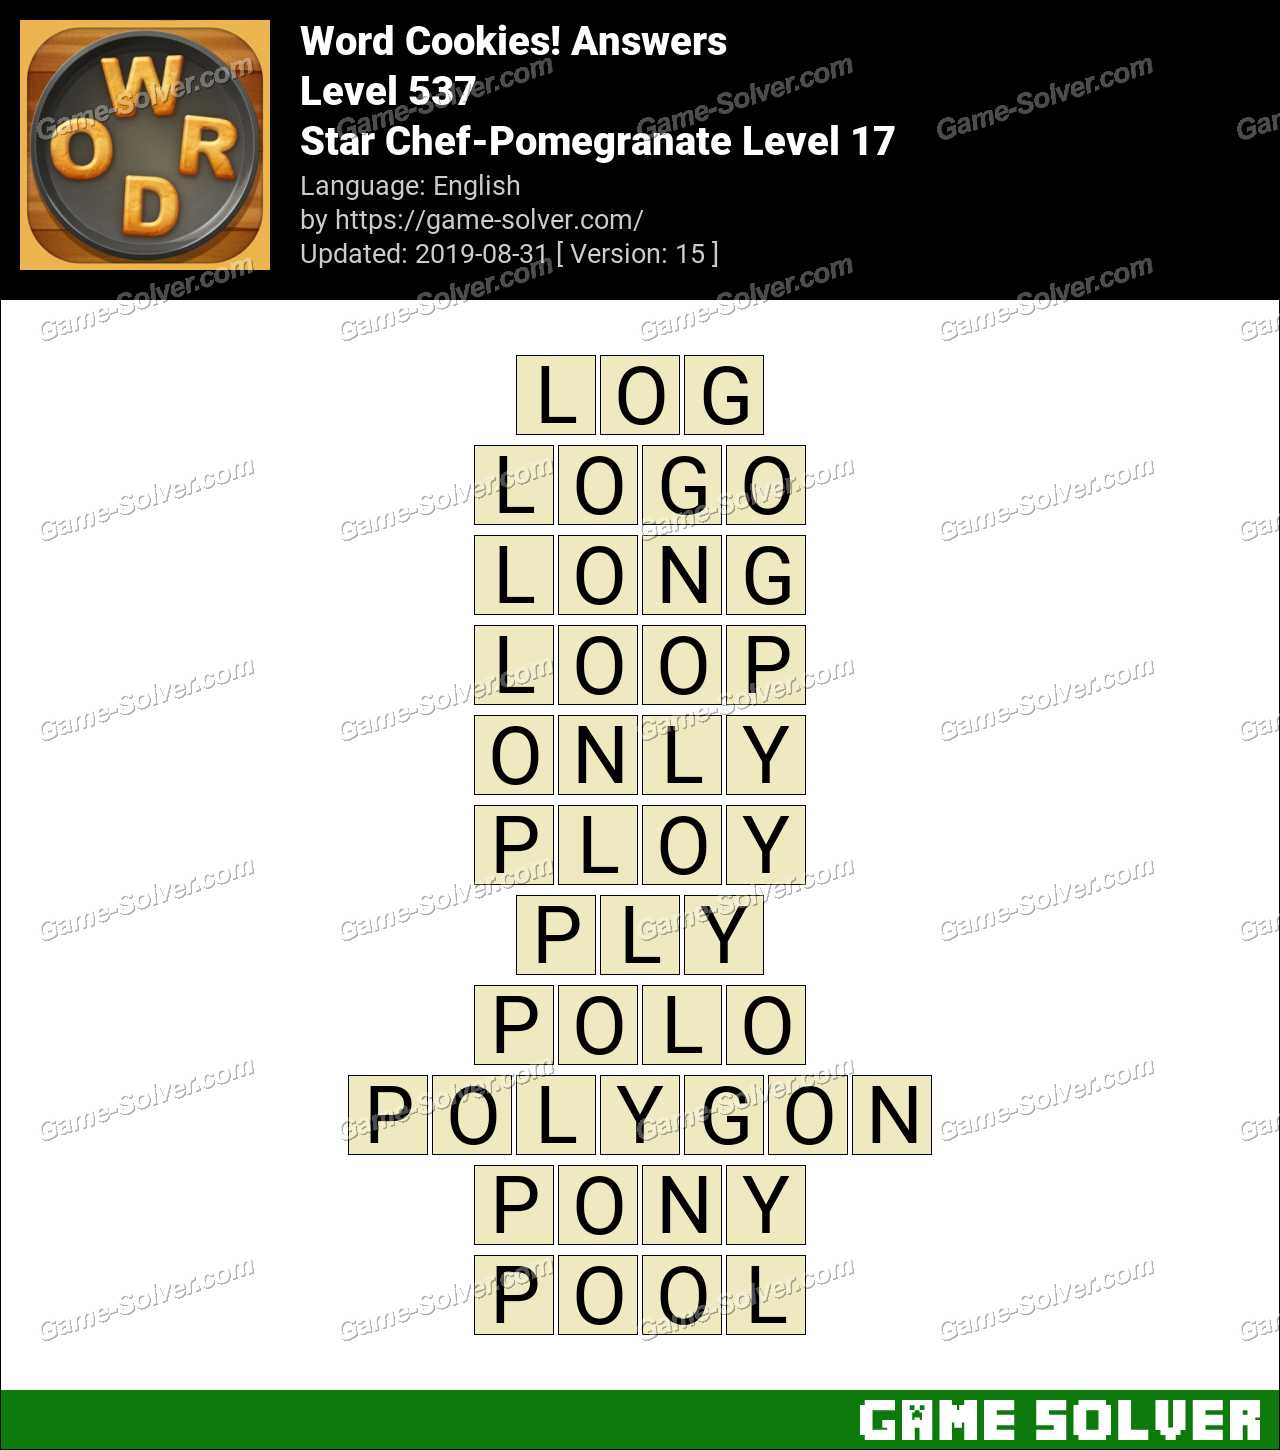 Word Cookies Star Chef-Pomegranate Level 17 Answers